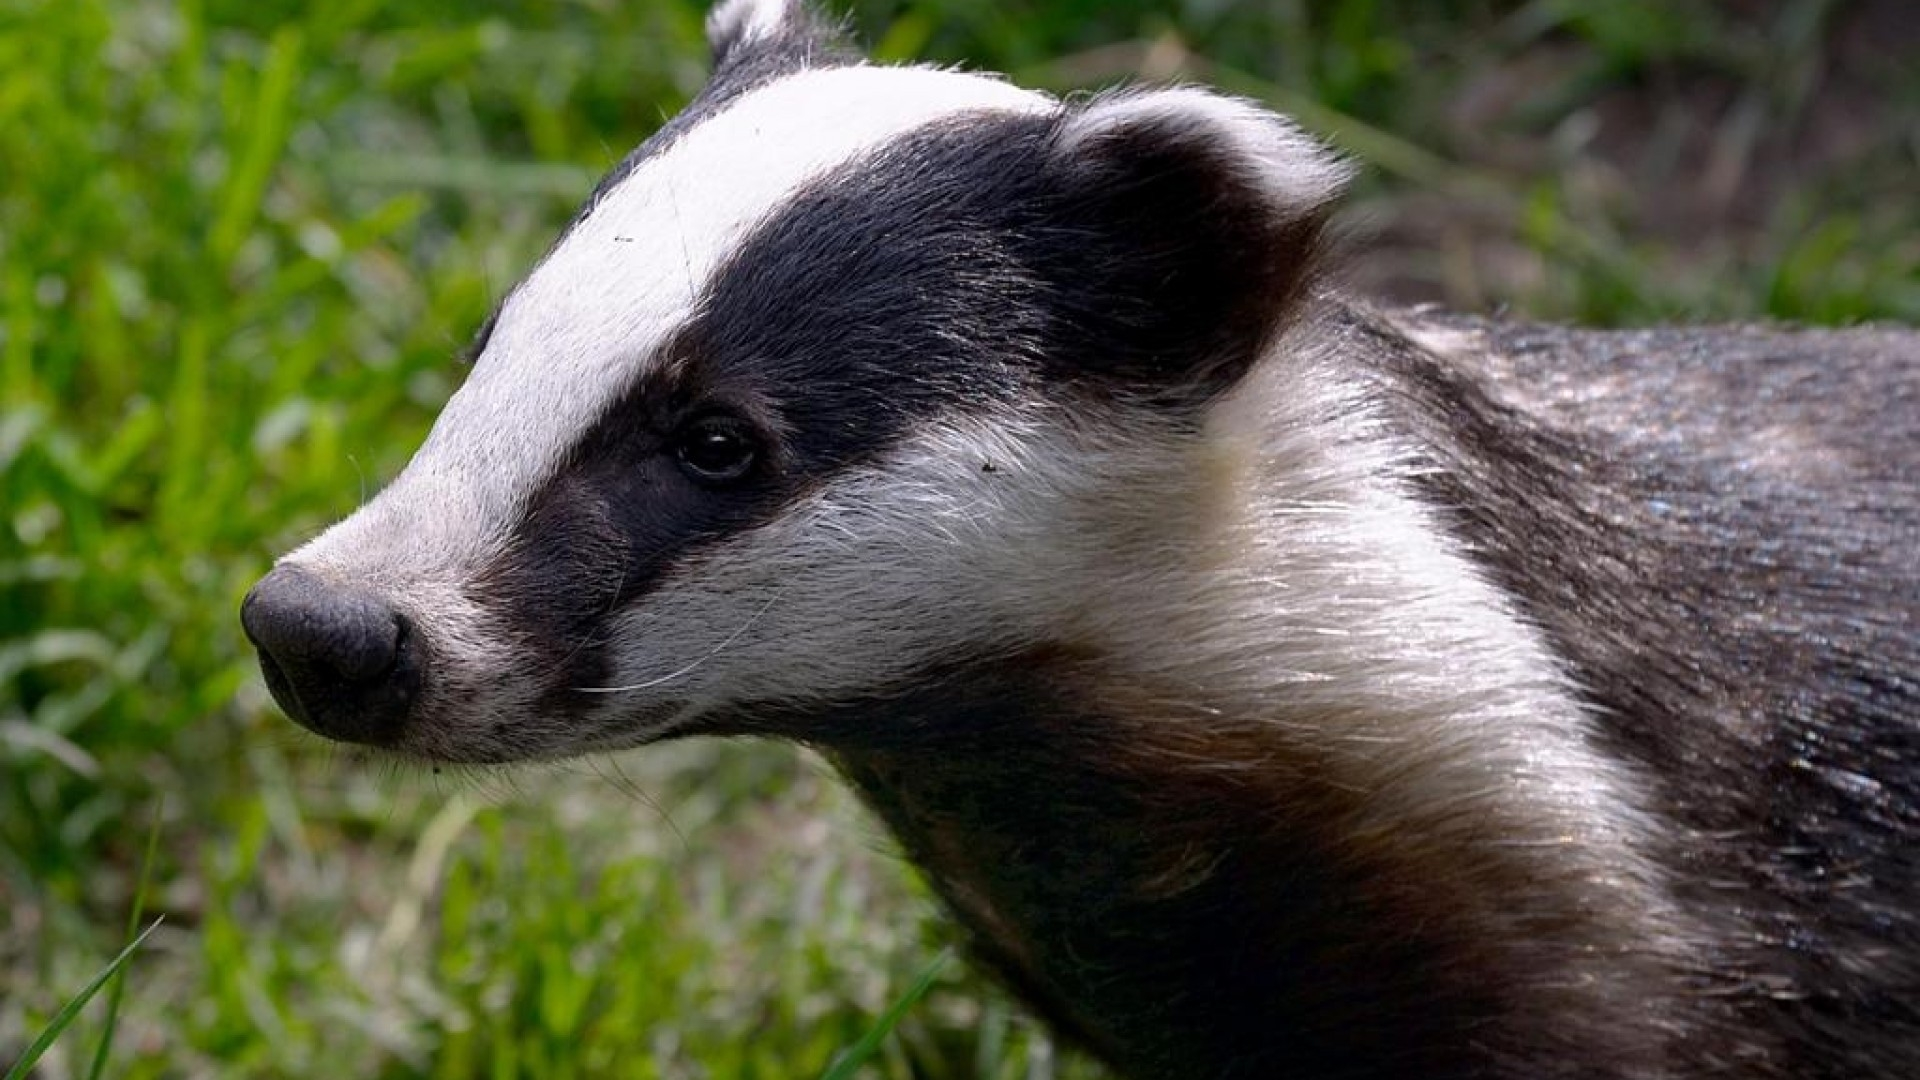 badger 1080p hd